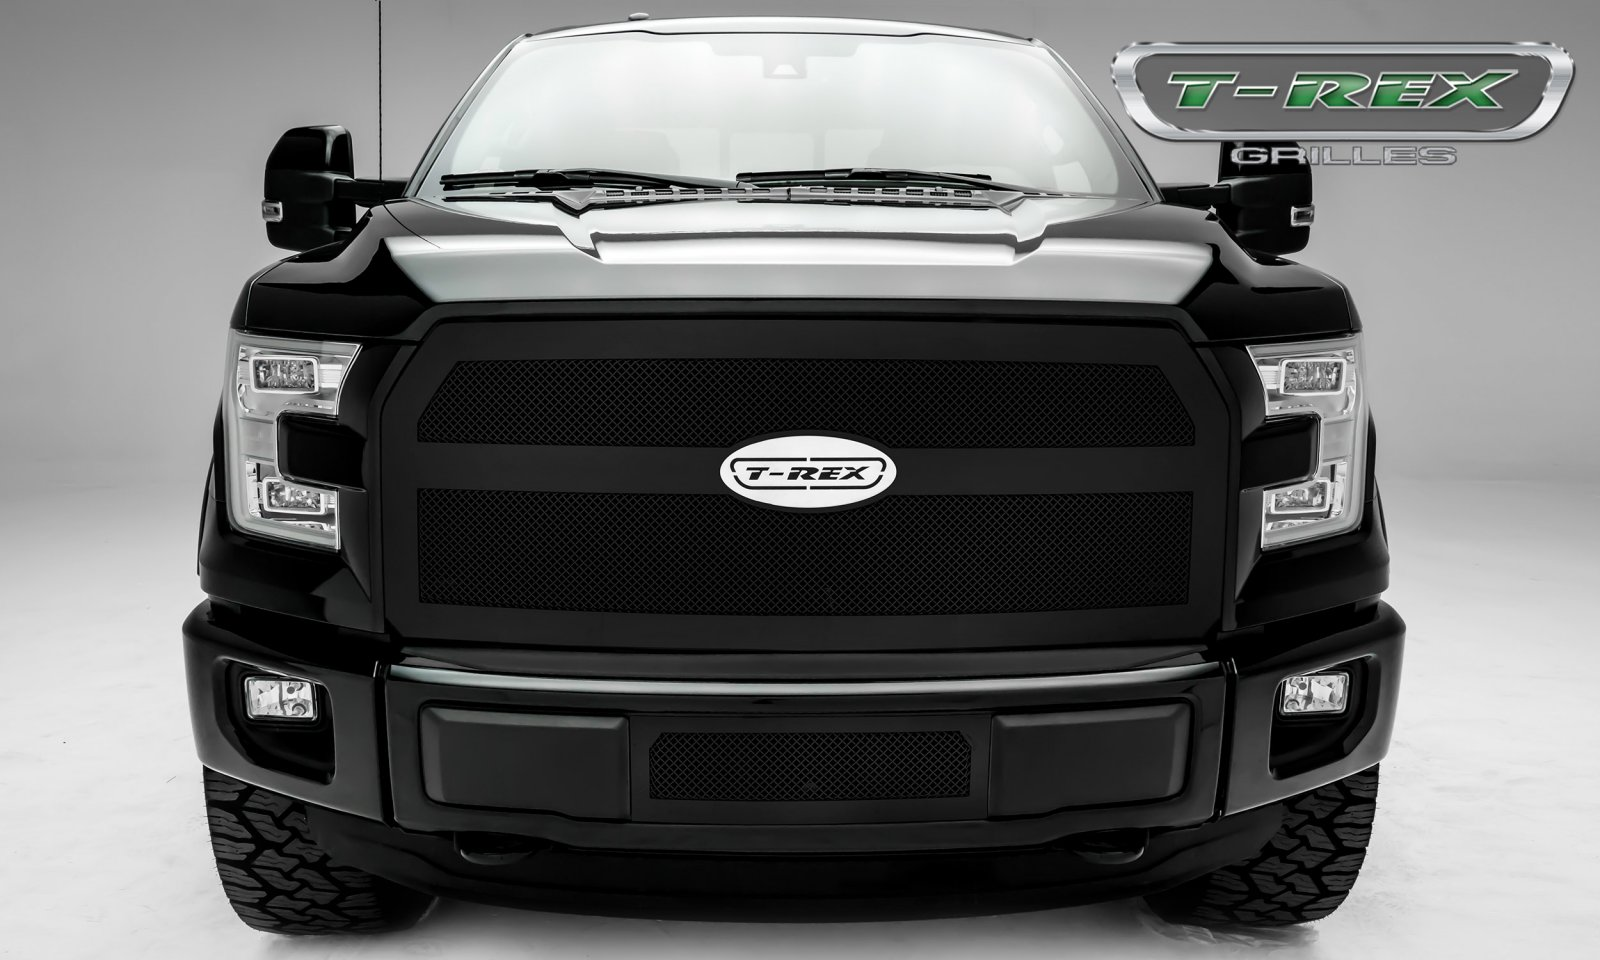 T-Rex USA Grilles, Automotive Grille Innovation at Pro Truck in Edmonton, AB